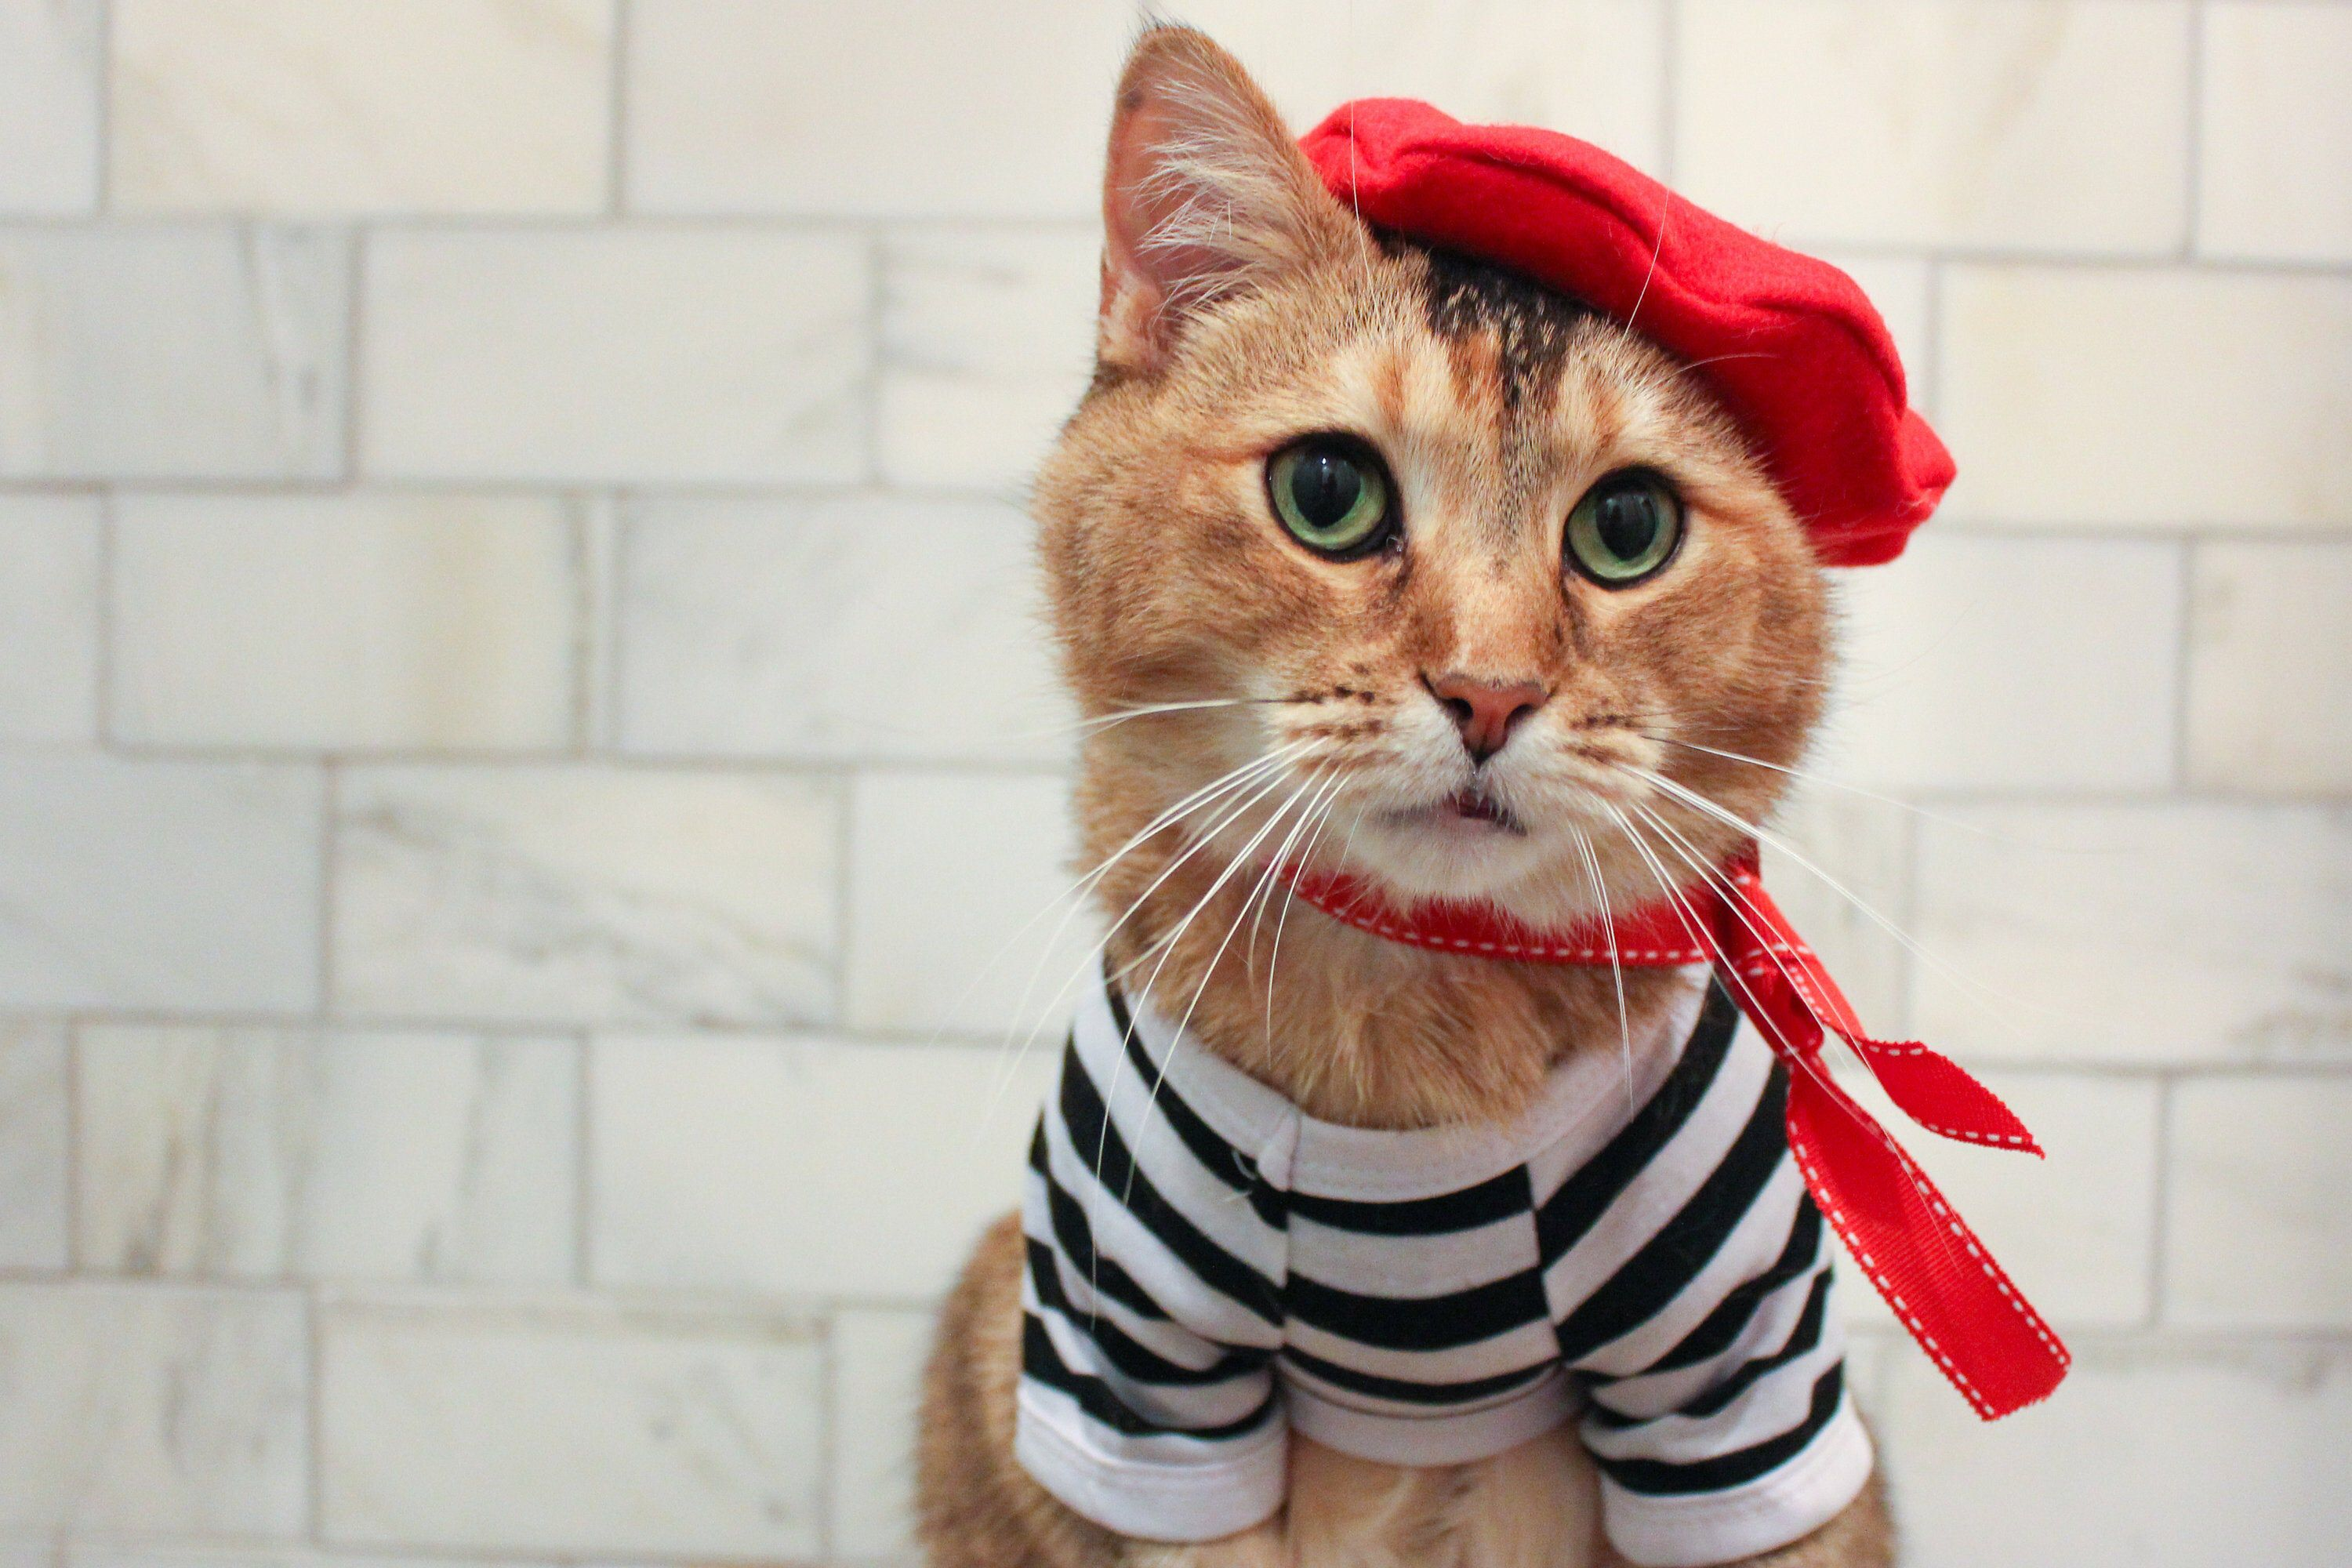 Complete French Cat Outfit Cat Beret Ascot And Striped Shirt Etsy French Cats Cat Clothes Cat Outfits Pets